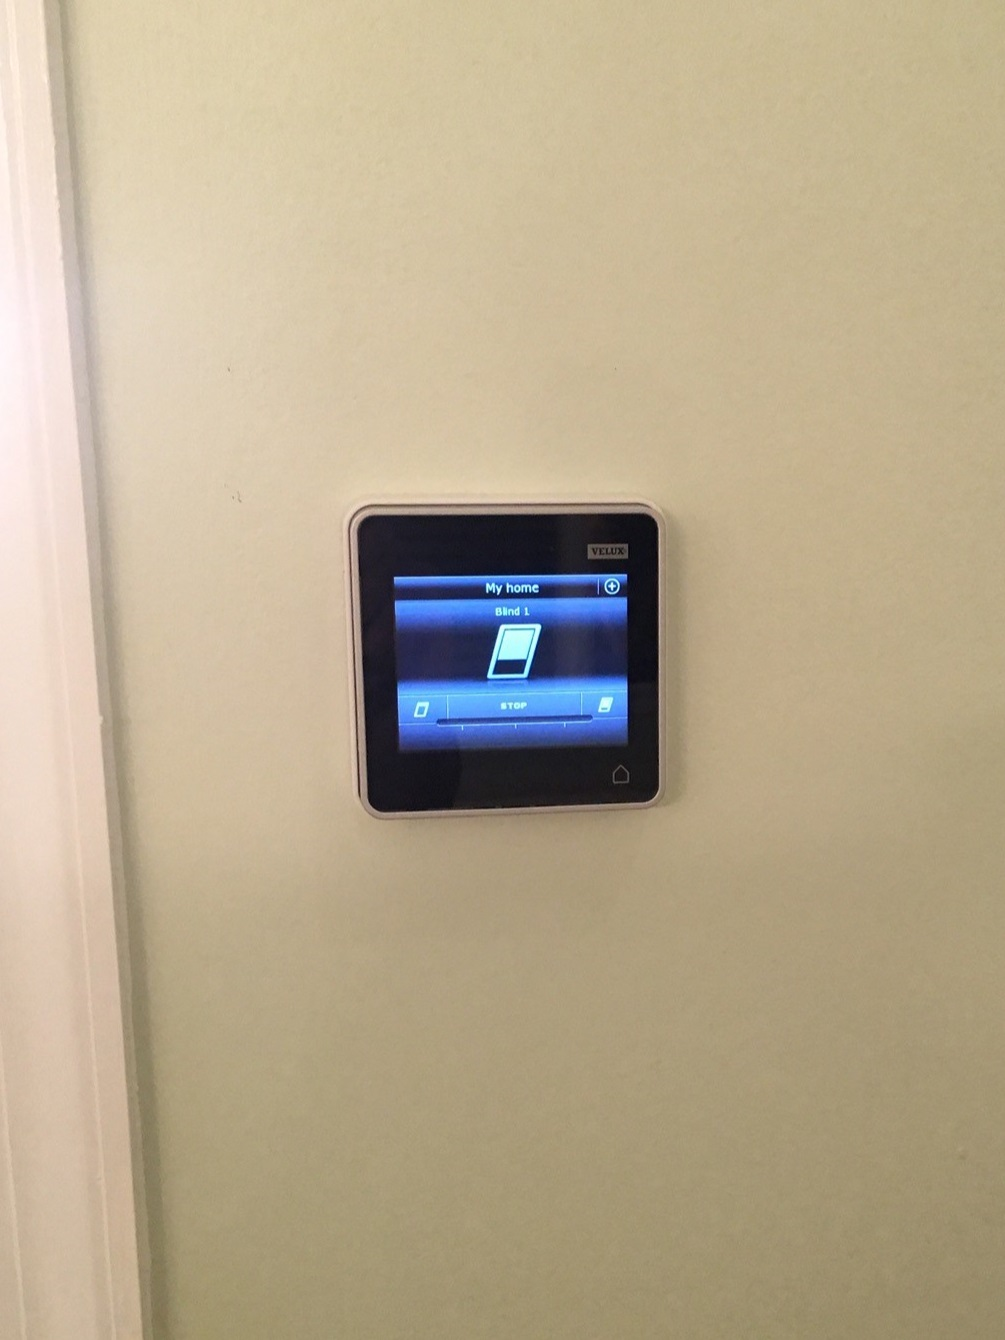 Skylight blind remote control